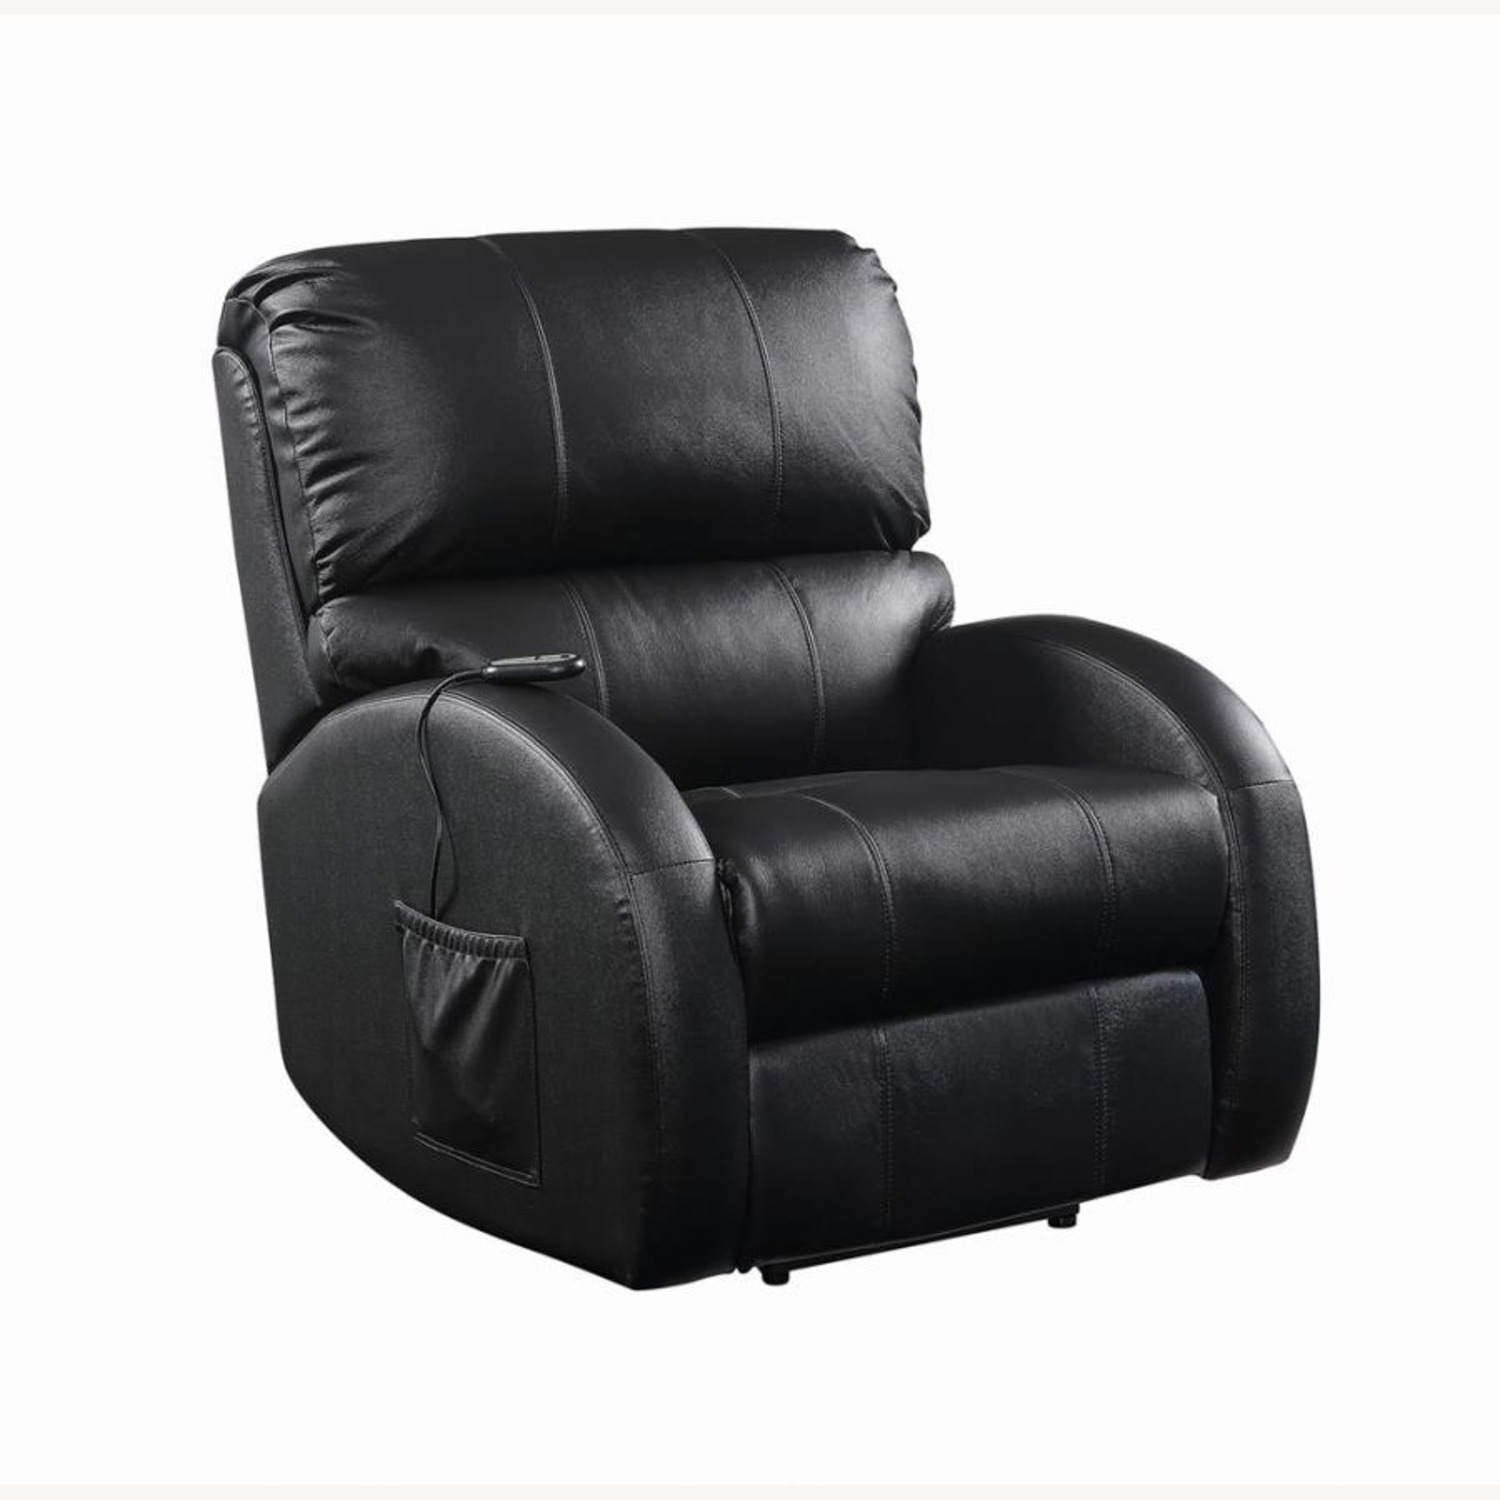 Power Lift Recliner In Black Top Grain Leather - image-0